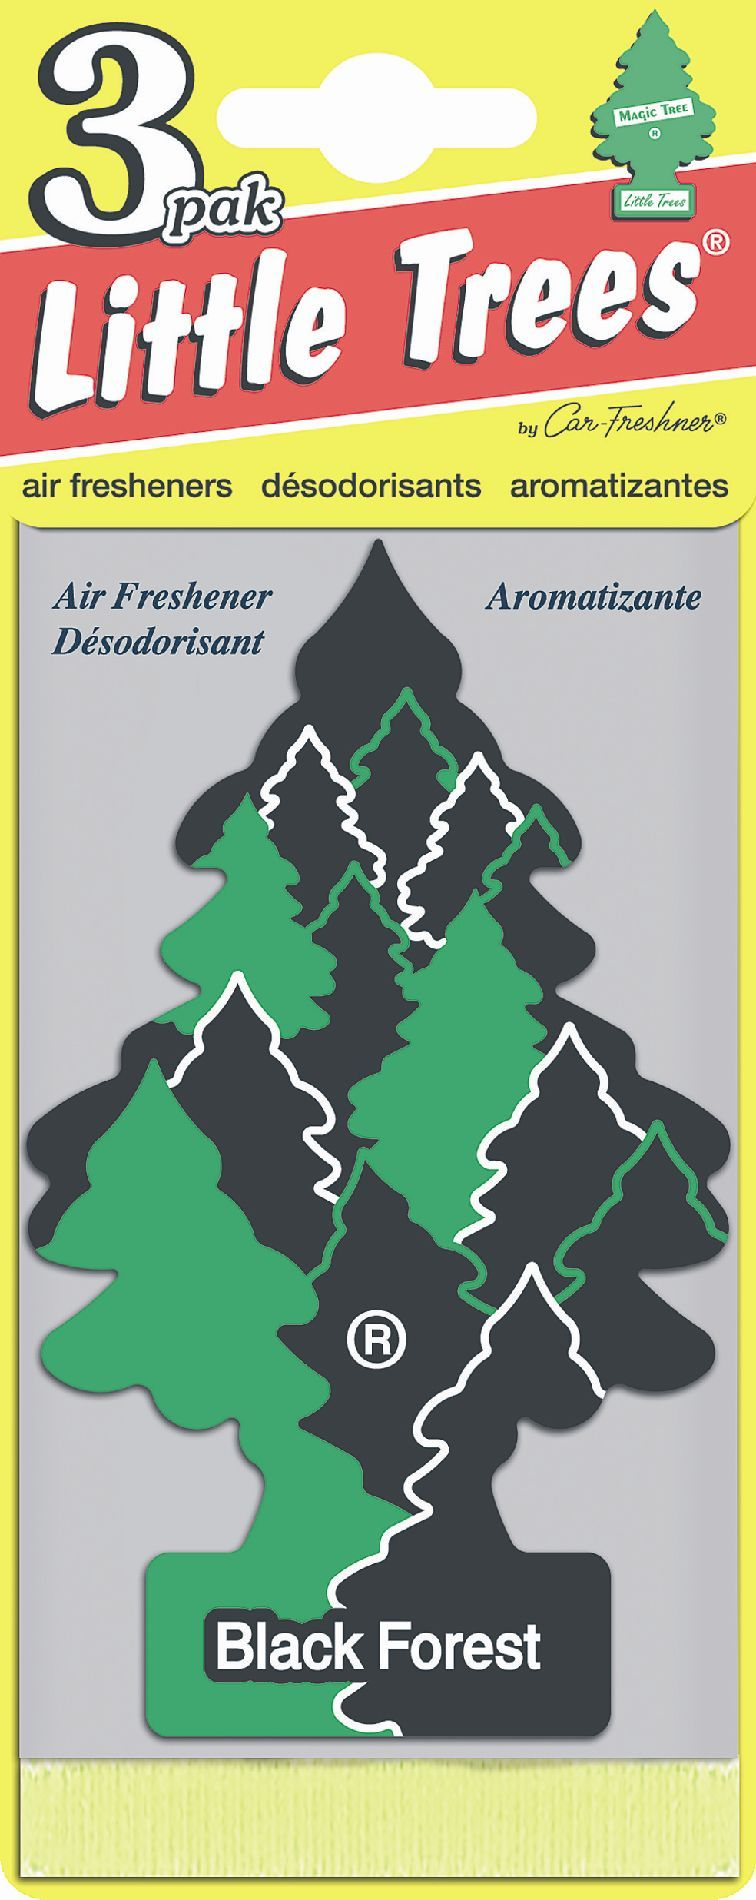 Car Freshner Little Trees Air Freshener 3 pack Black